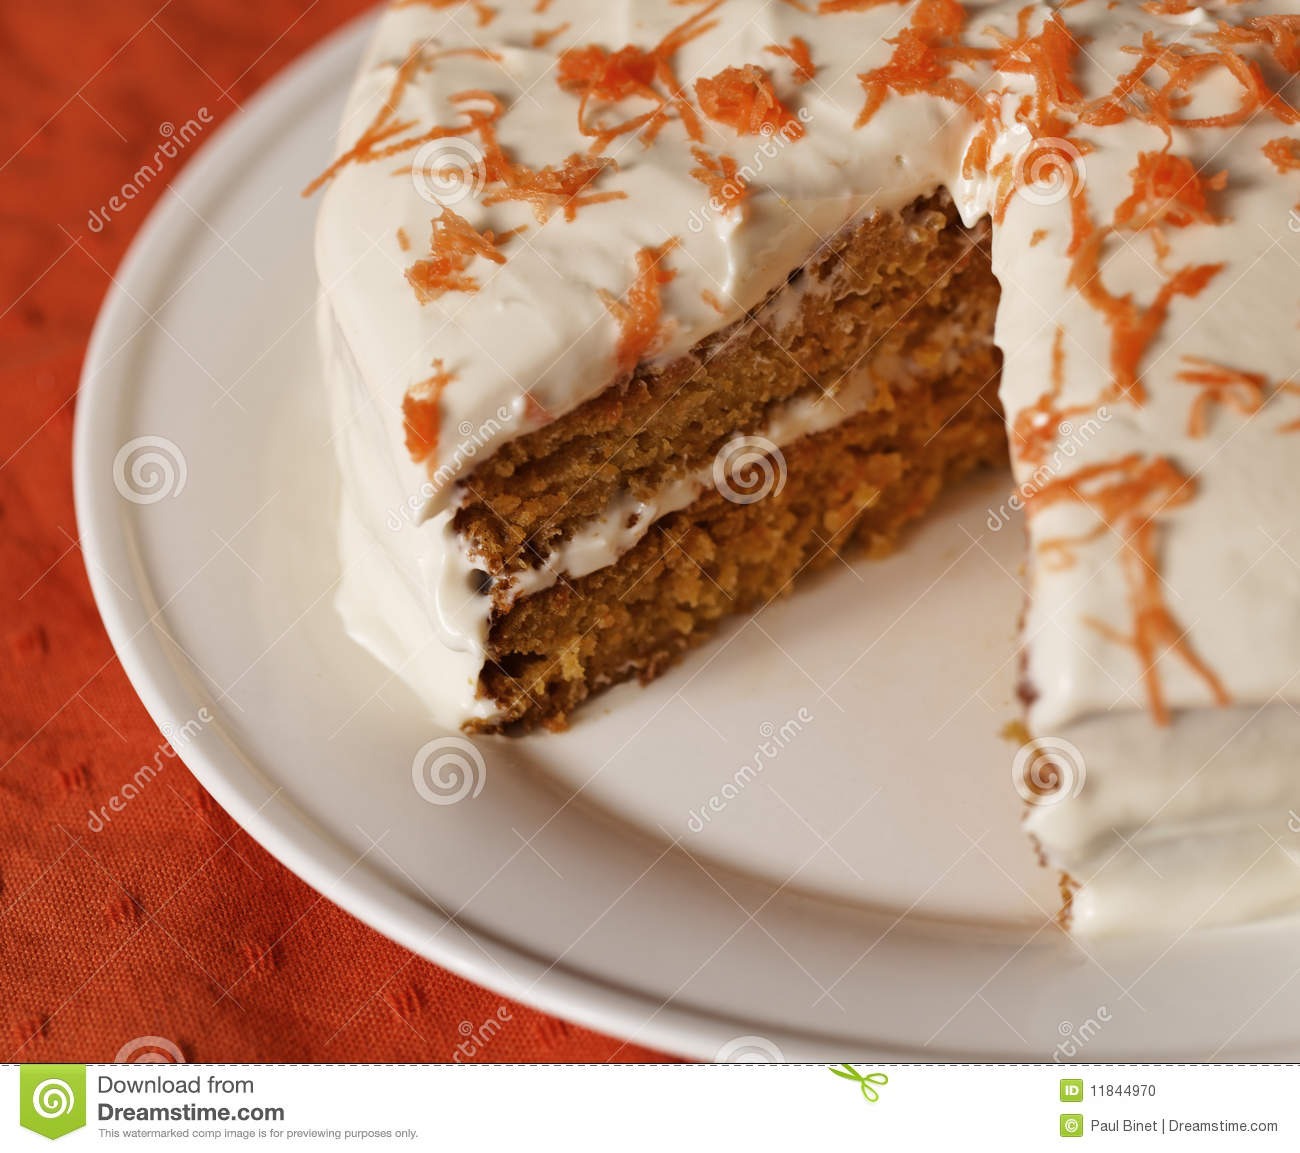 Calories In A Slice Of Homemade Carrot Cake